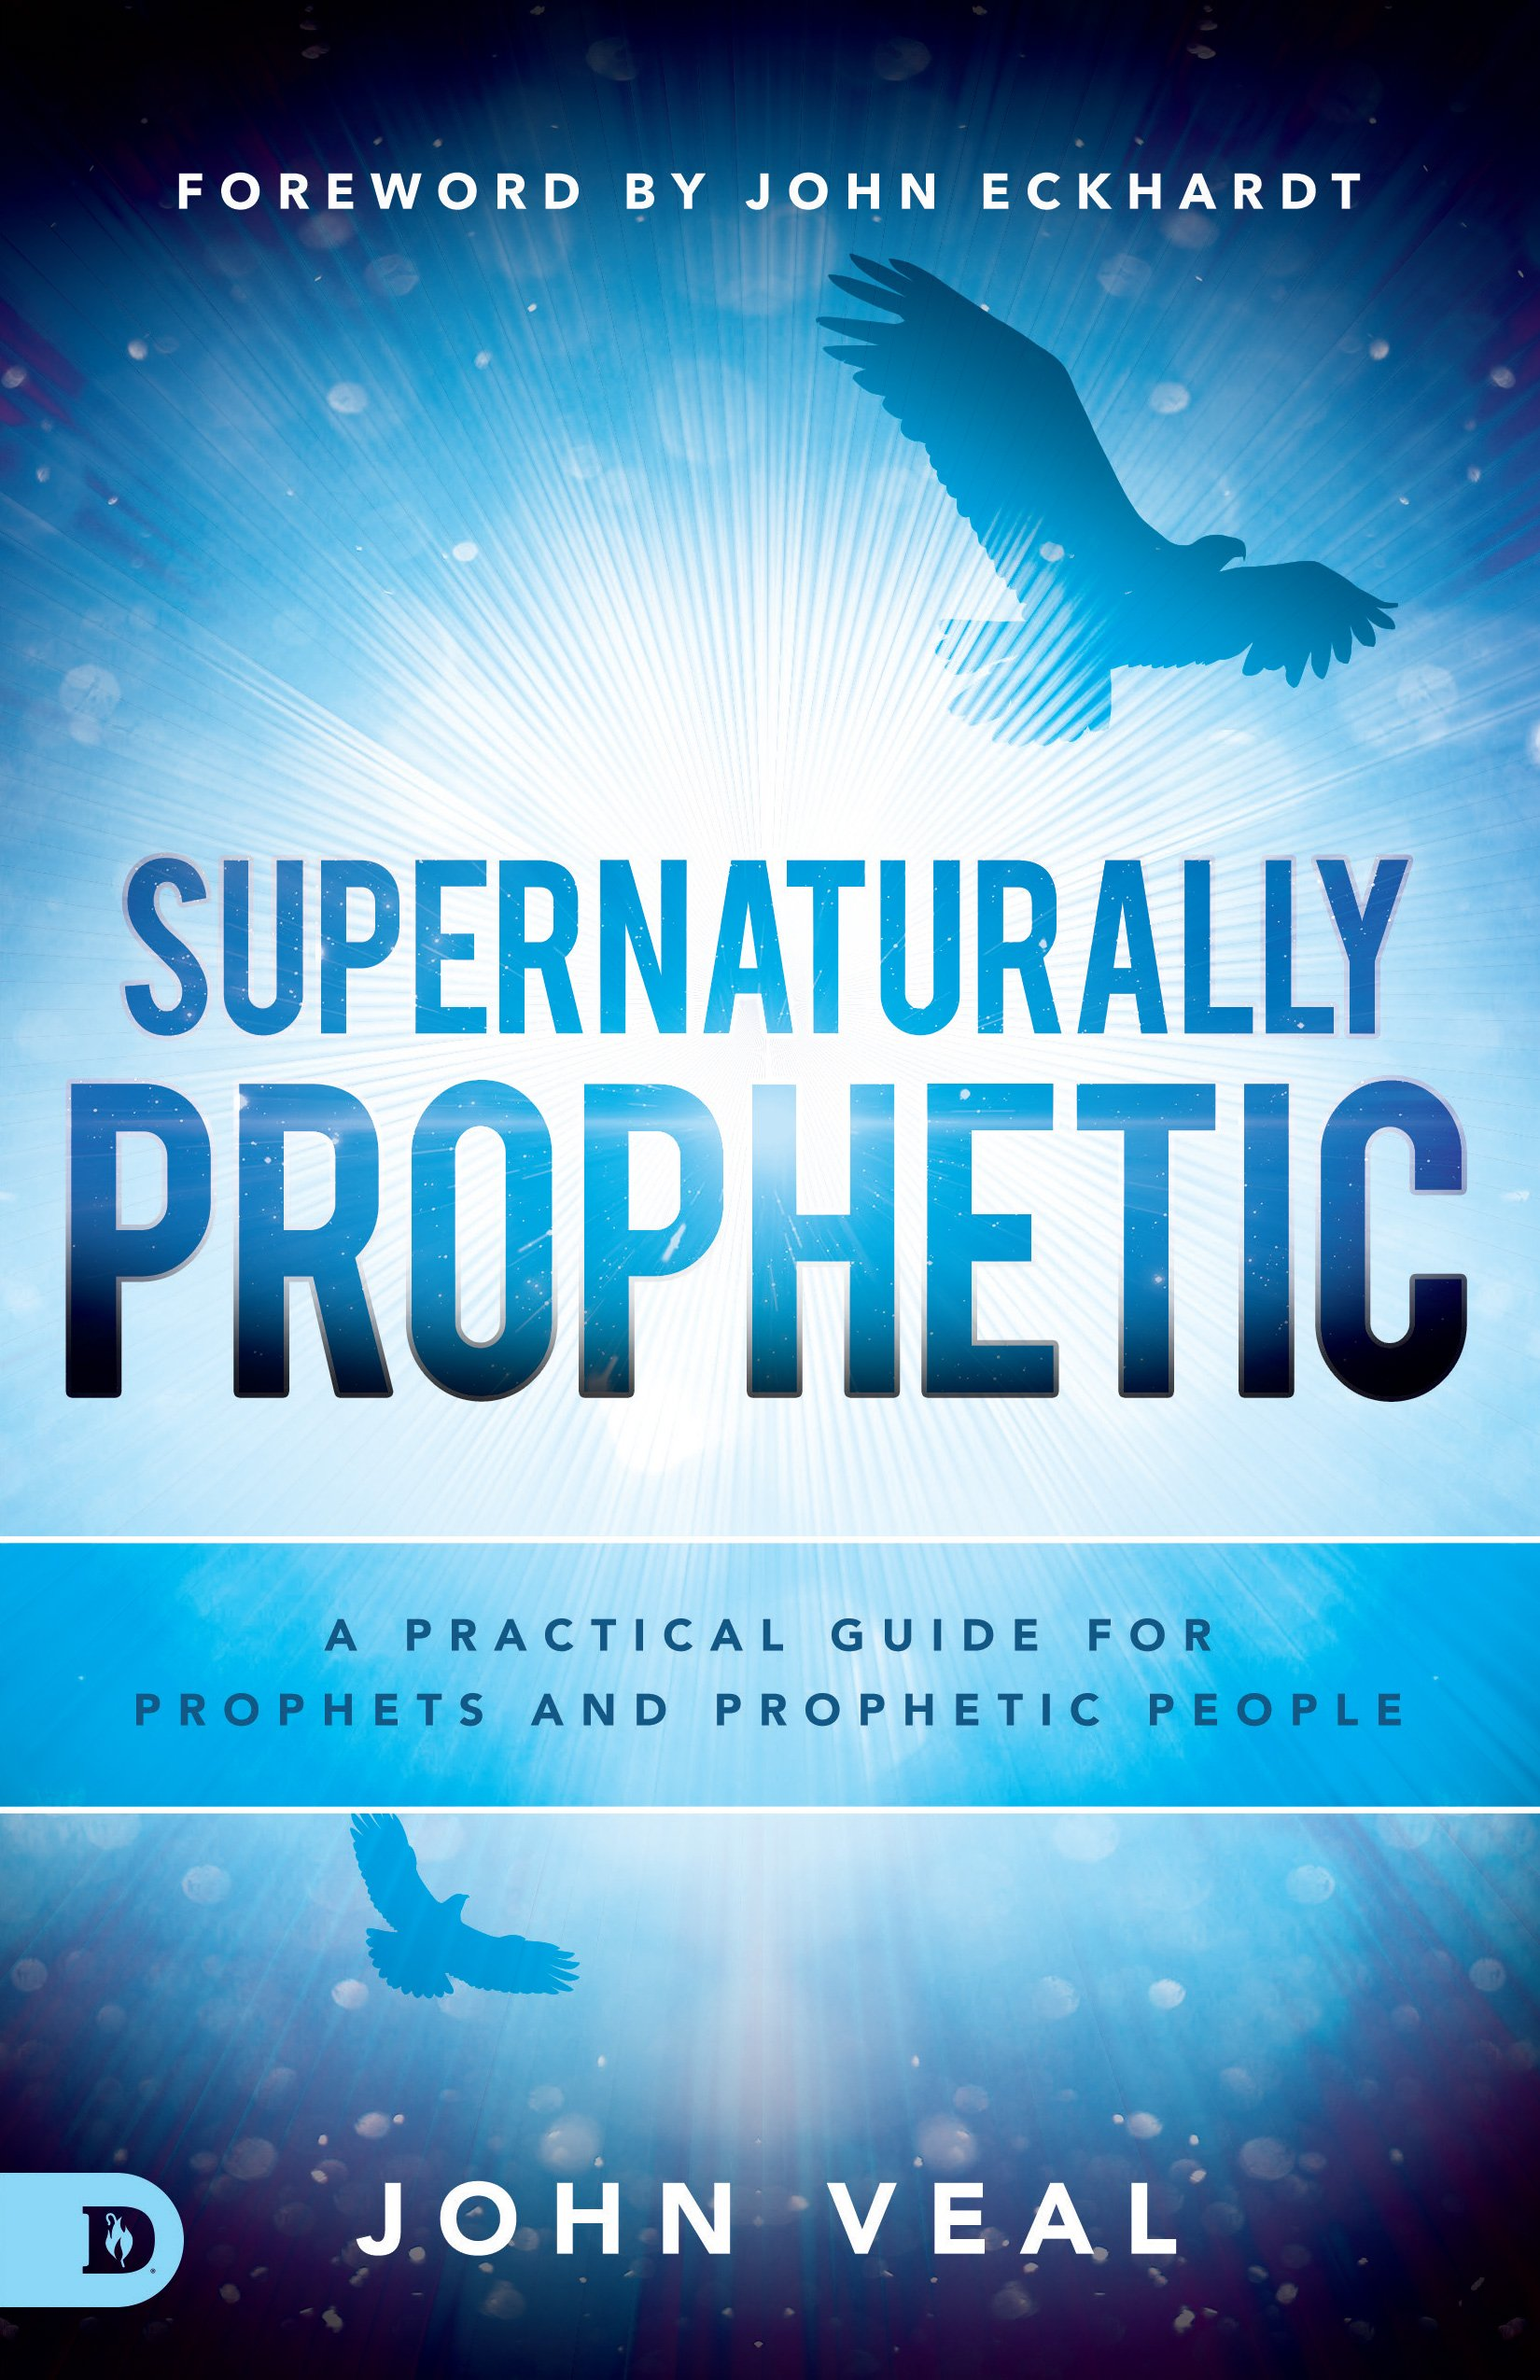 Supernaturally Prophetic: A Practical Guide for Prophets and Prophetic  People: John Veal, John Eckhardt: 9780768446333: Amazon.com: Books